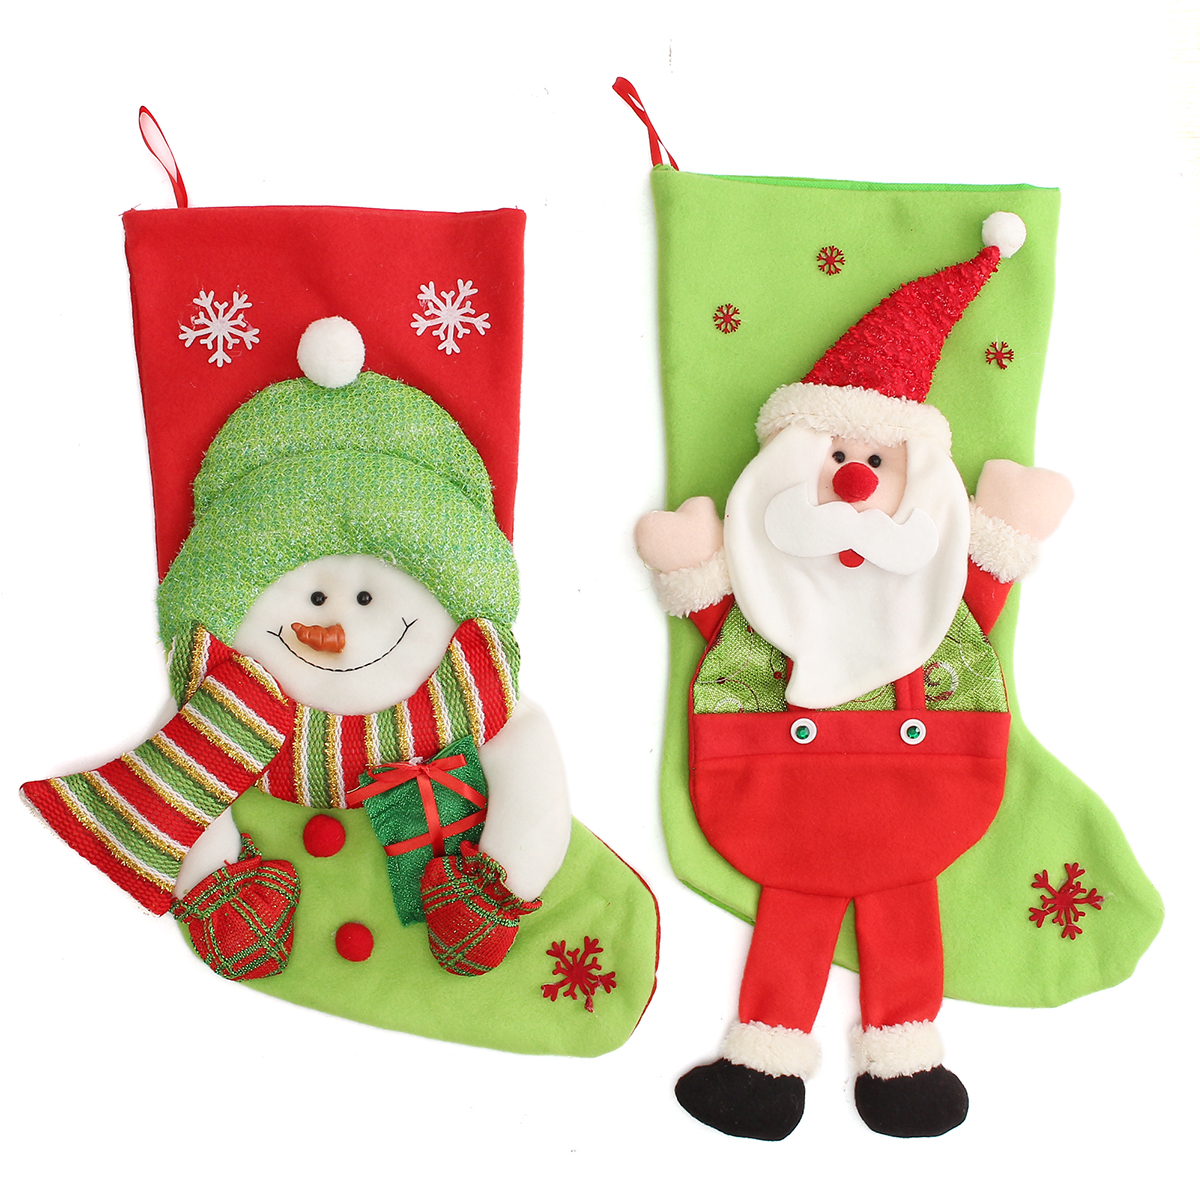 Christmas Gift Sock Bags Santa Claus Snowman Pattern Fleece Hanging Stockings Ornament Socks